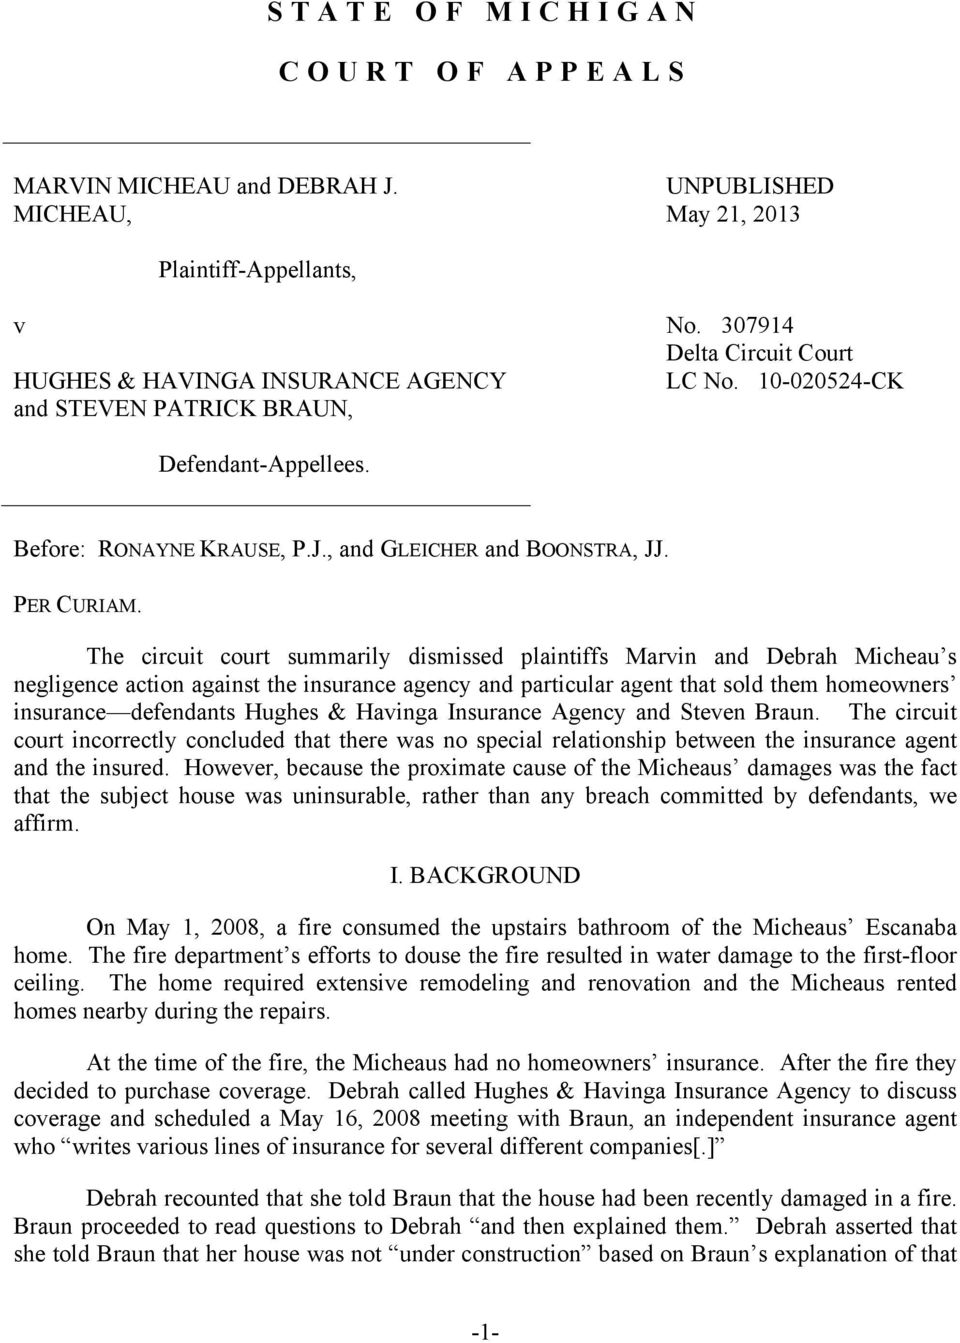 The circuit court summarily dismissed plaintiffs Marvin and Debrah Micheau s negligence action against the insurance agency and particular agent that sold them homeowners insurance defendants Hughes